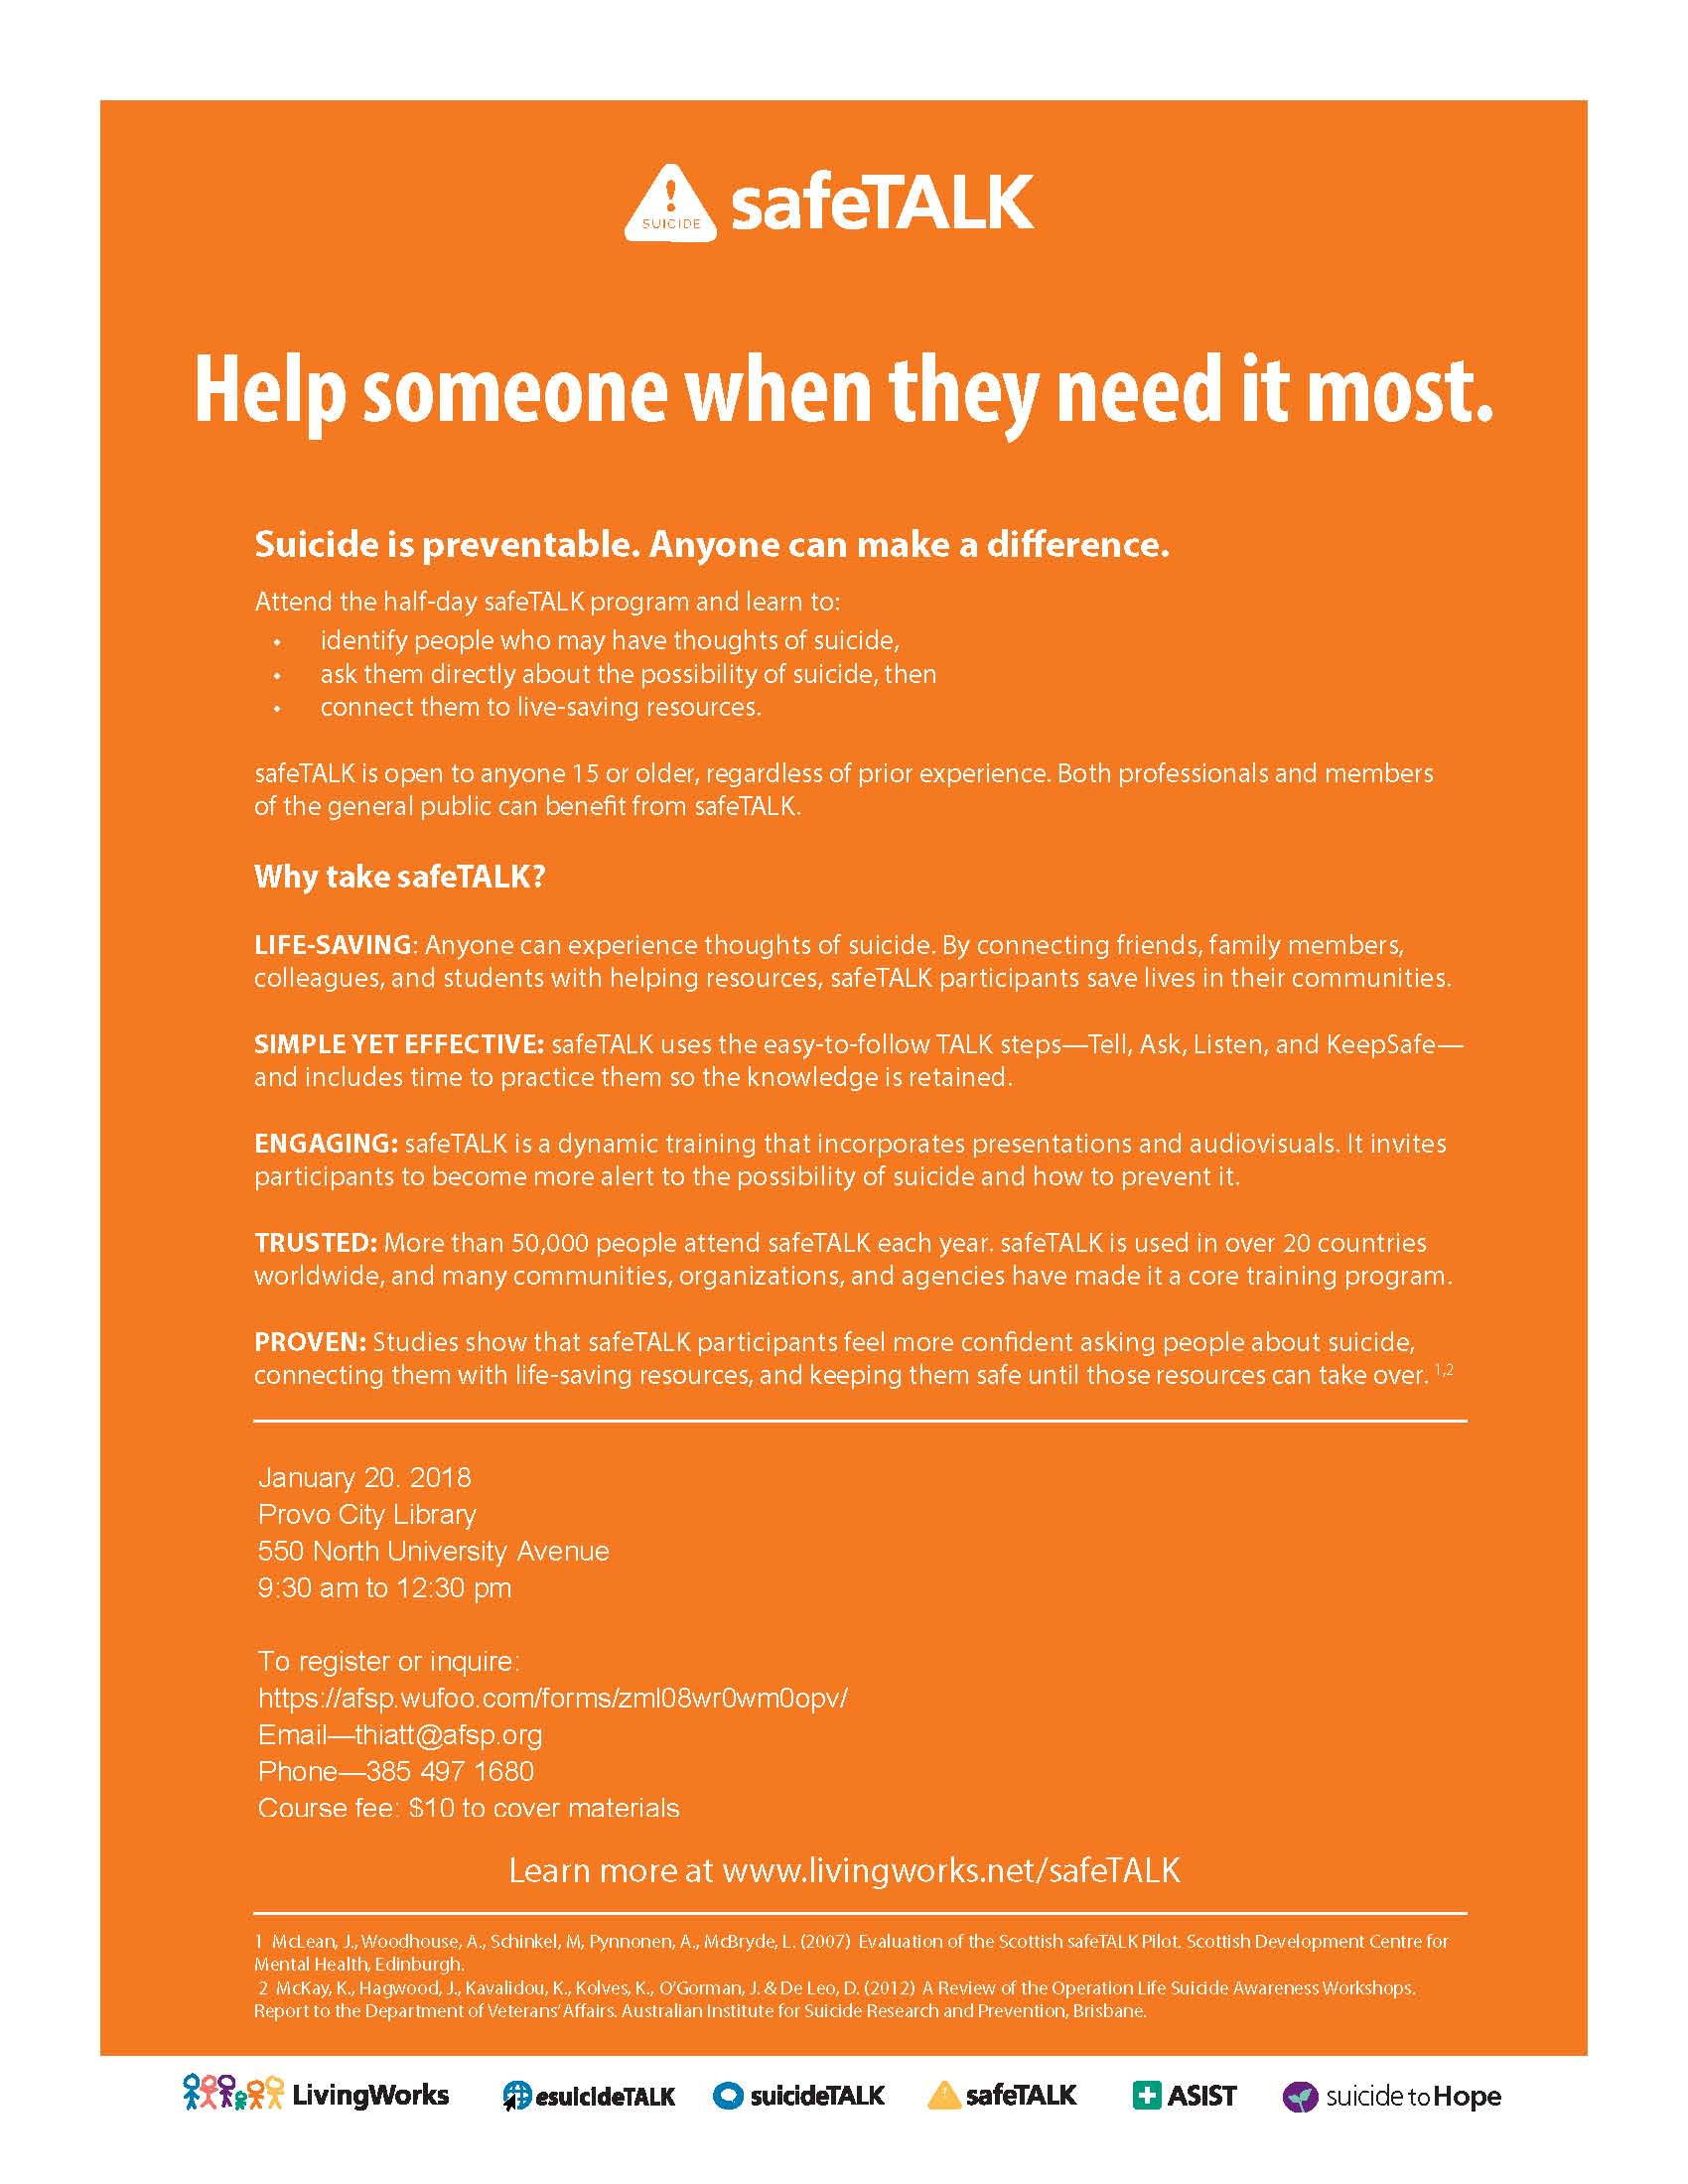 safeTALK Informational Flyer